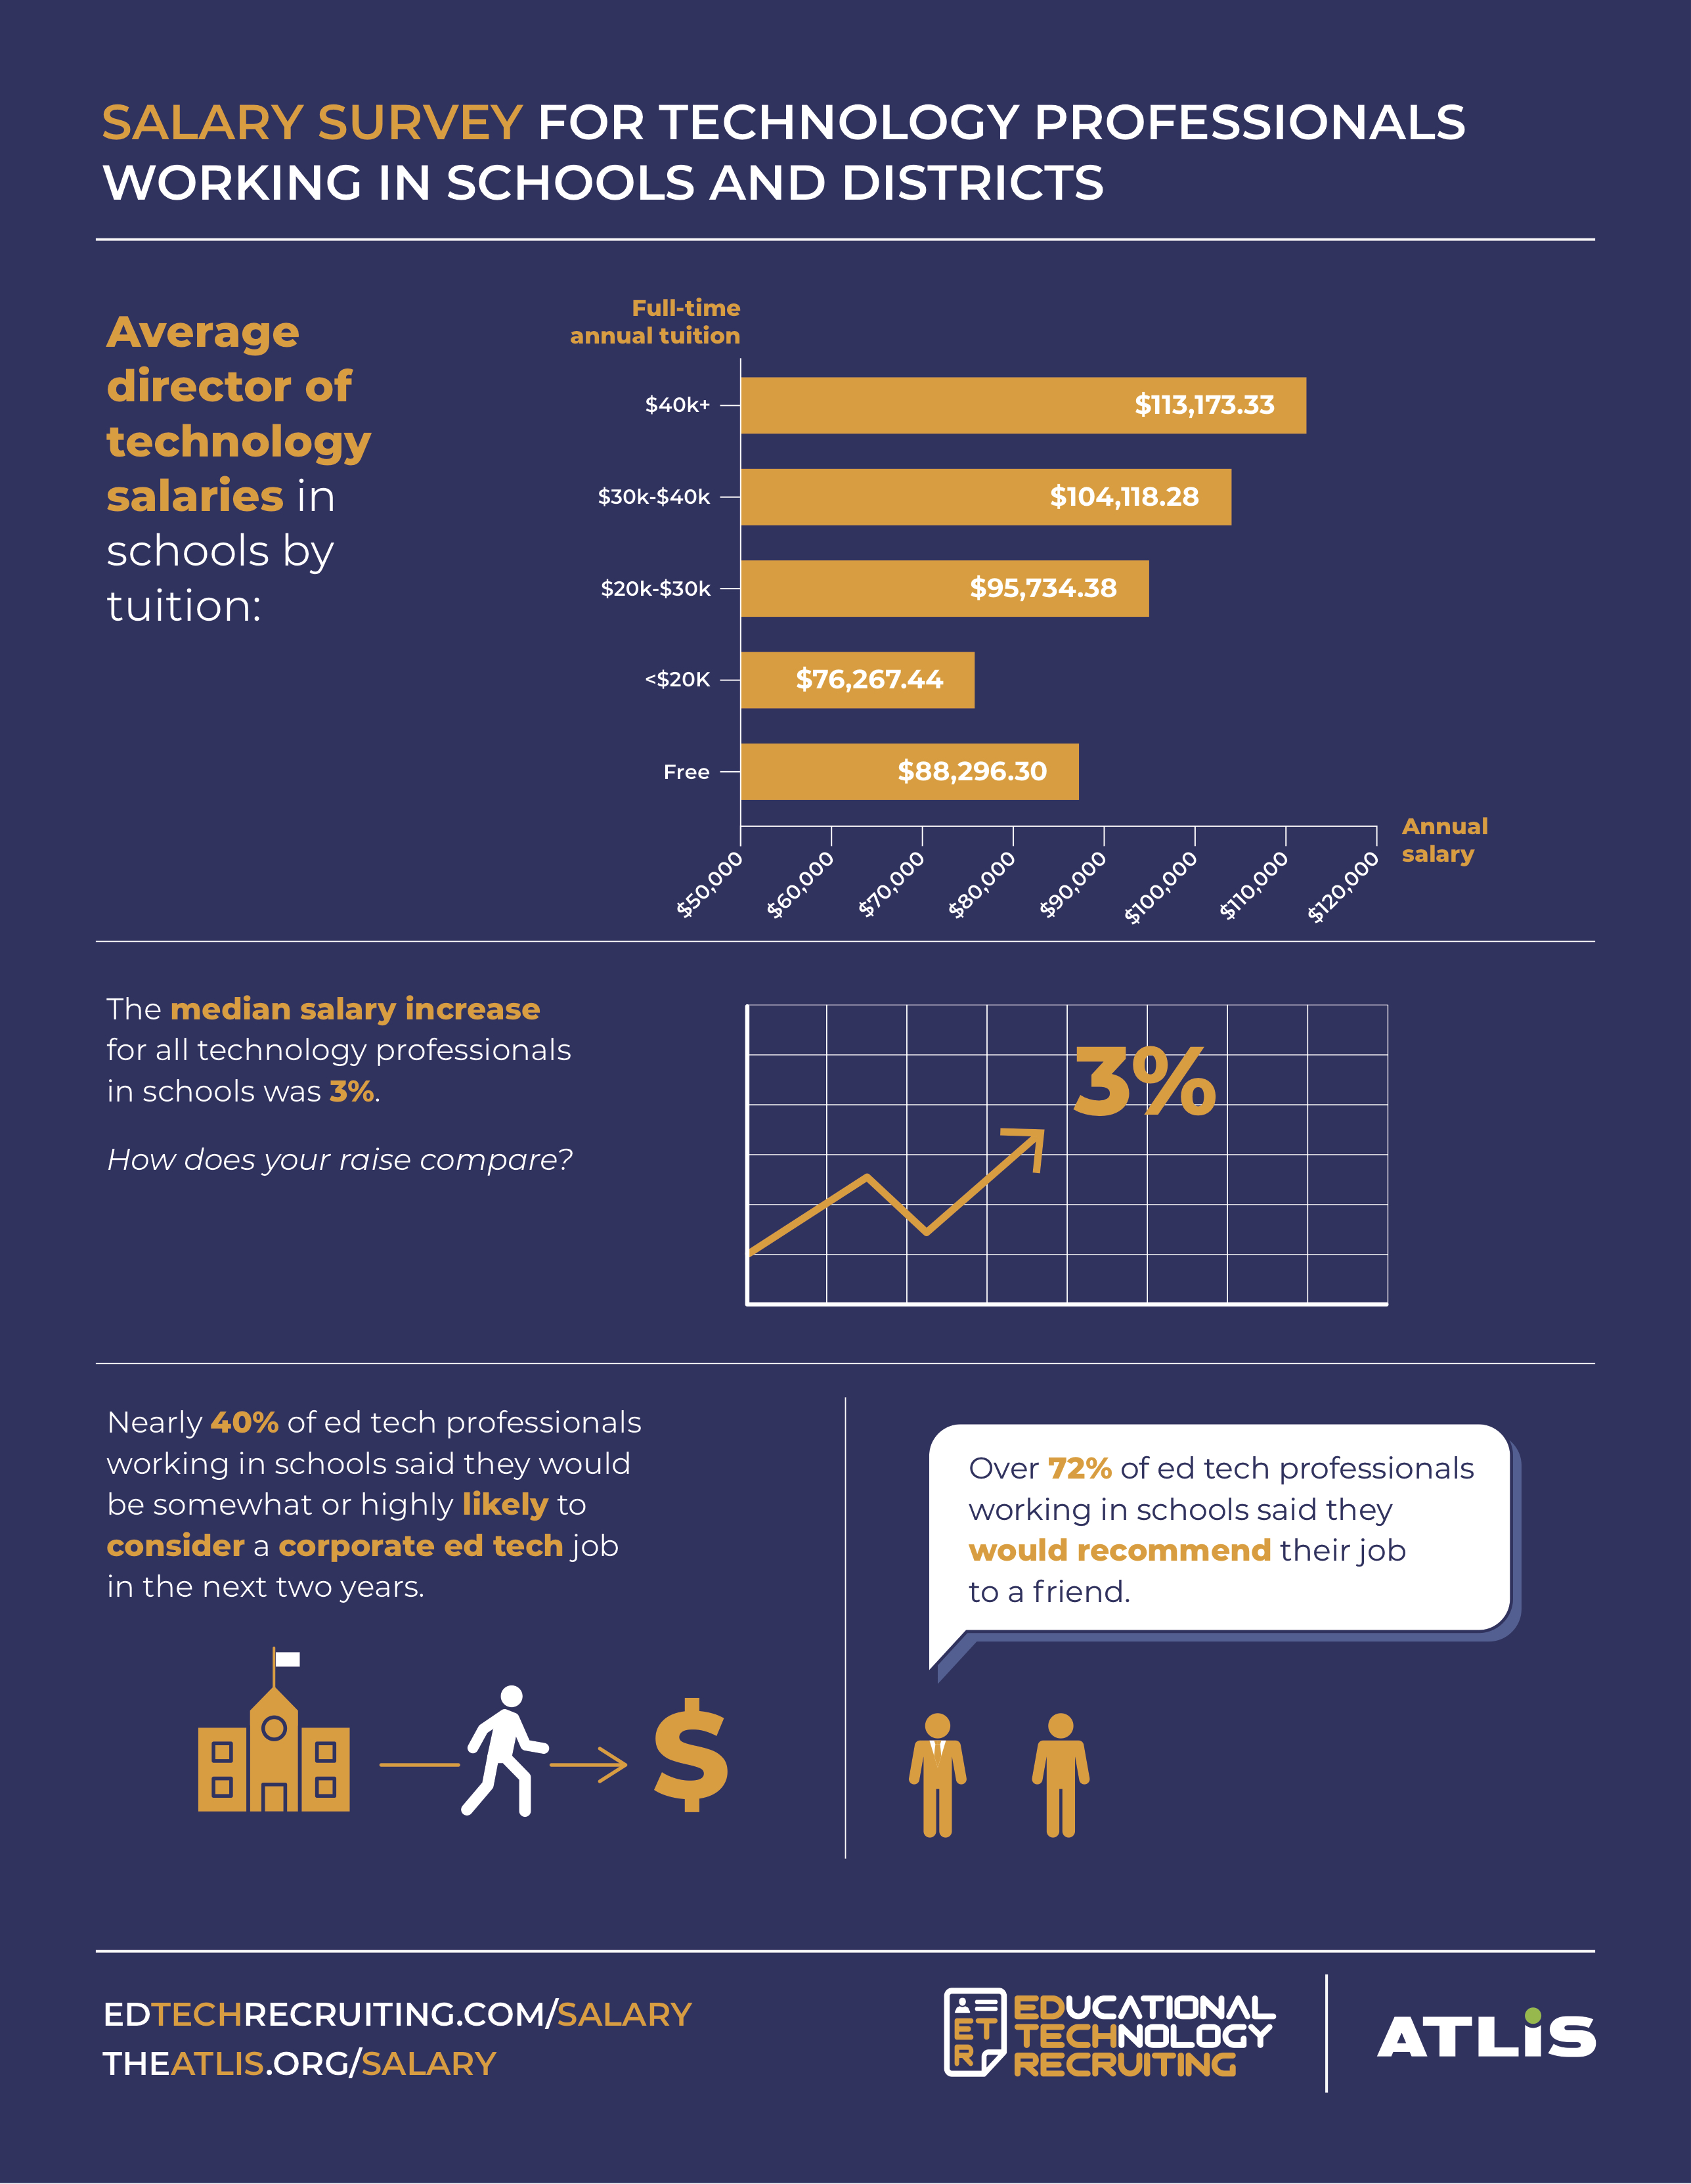 Salary Survey Infographic p. 2